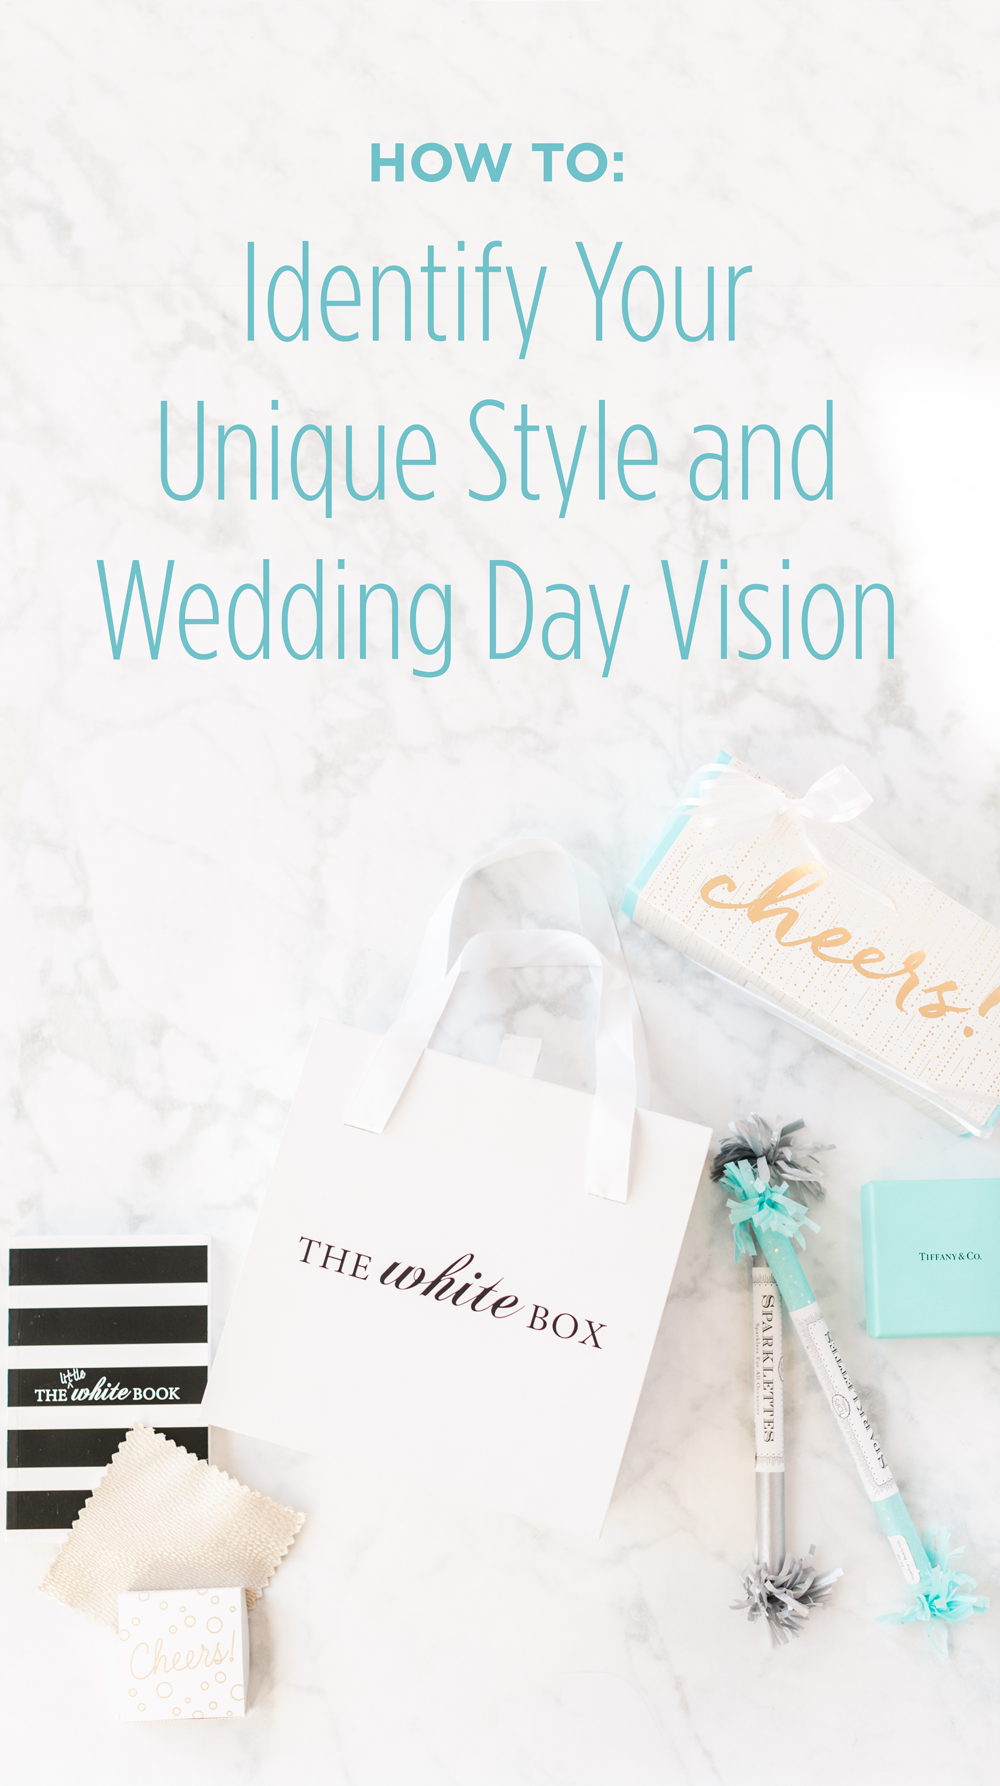 How to Identify Your Unique Style and Wedding Day Vision